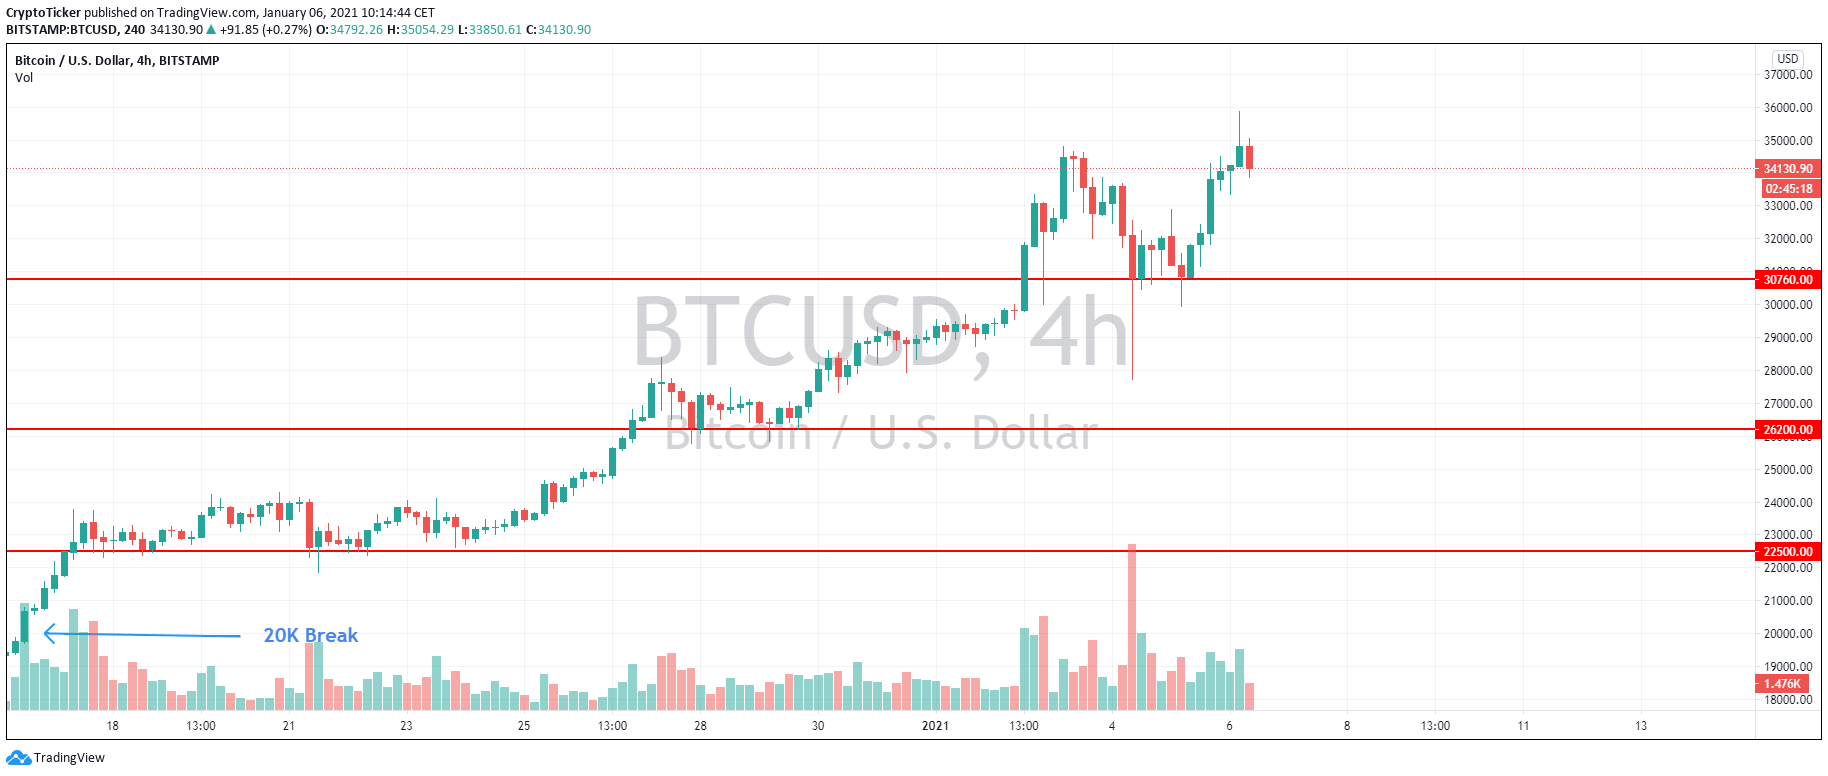 BTC/USD 4-hour chart showing Bitcoin's support areas